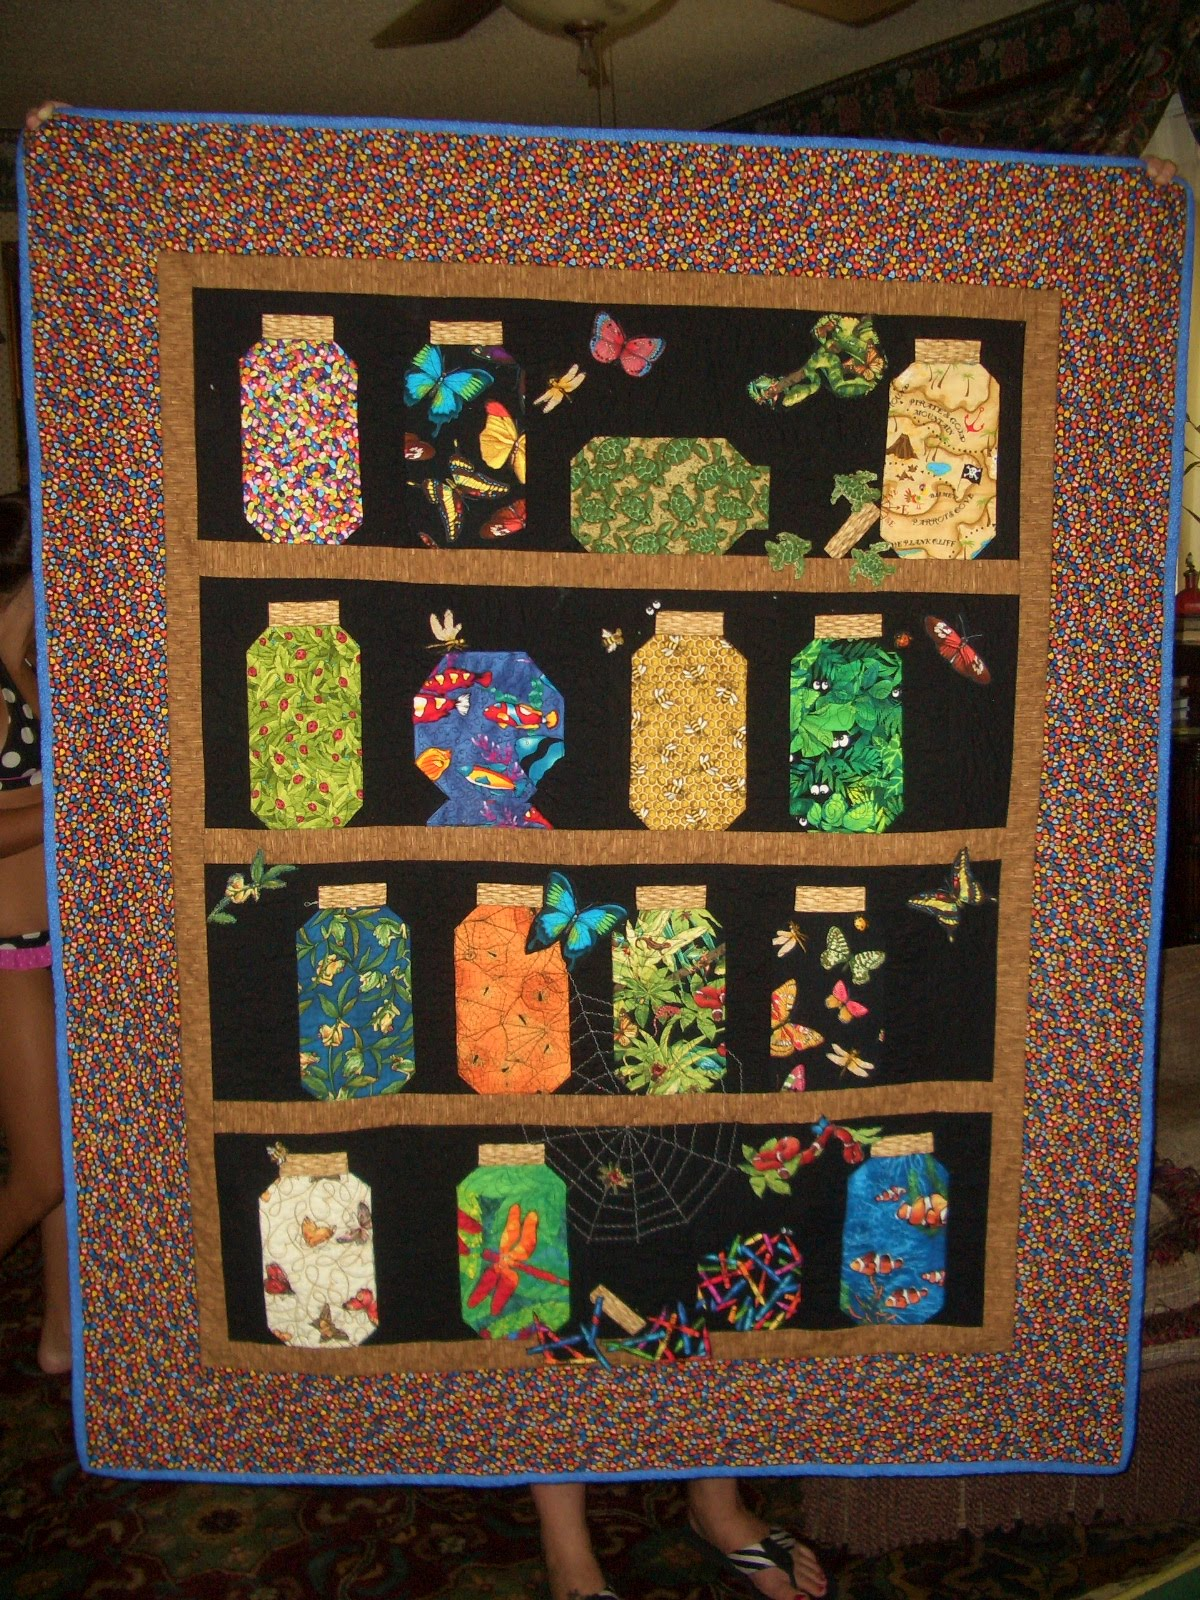 Colleen S Quot Quilting Journey To Oz Quot Another Bug Jar Quilt